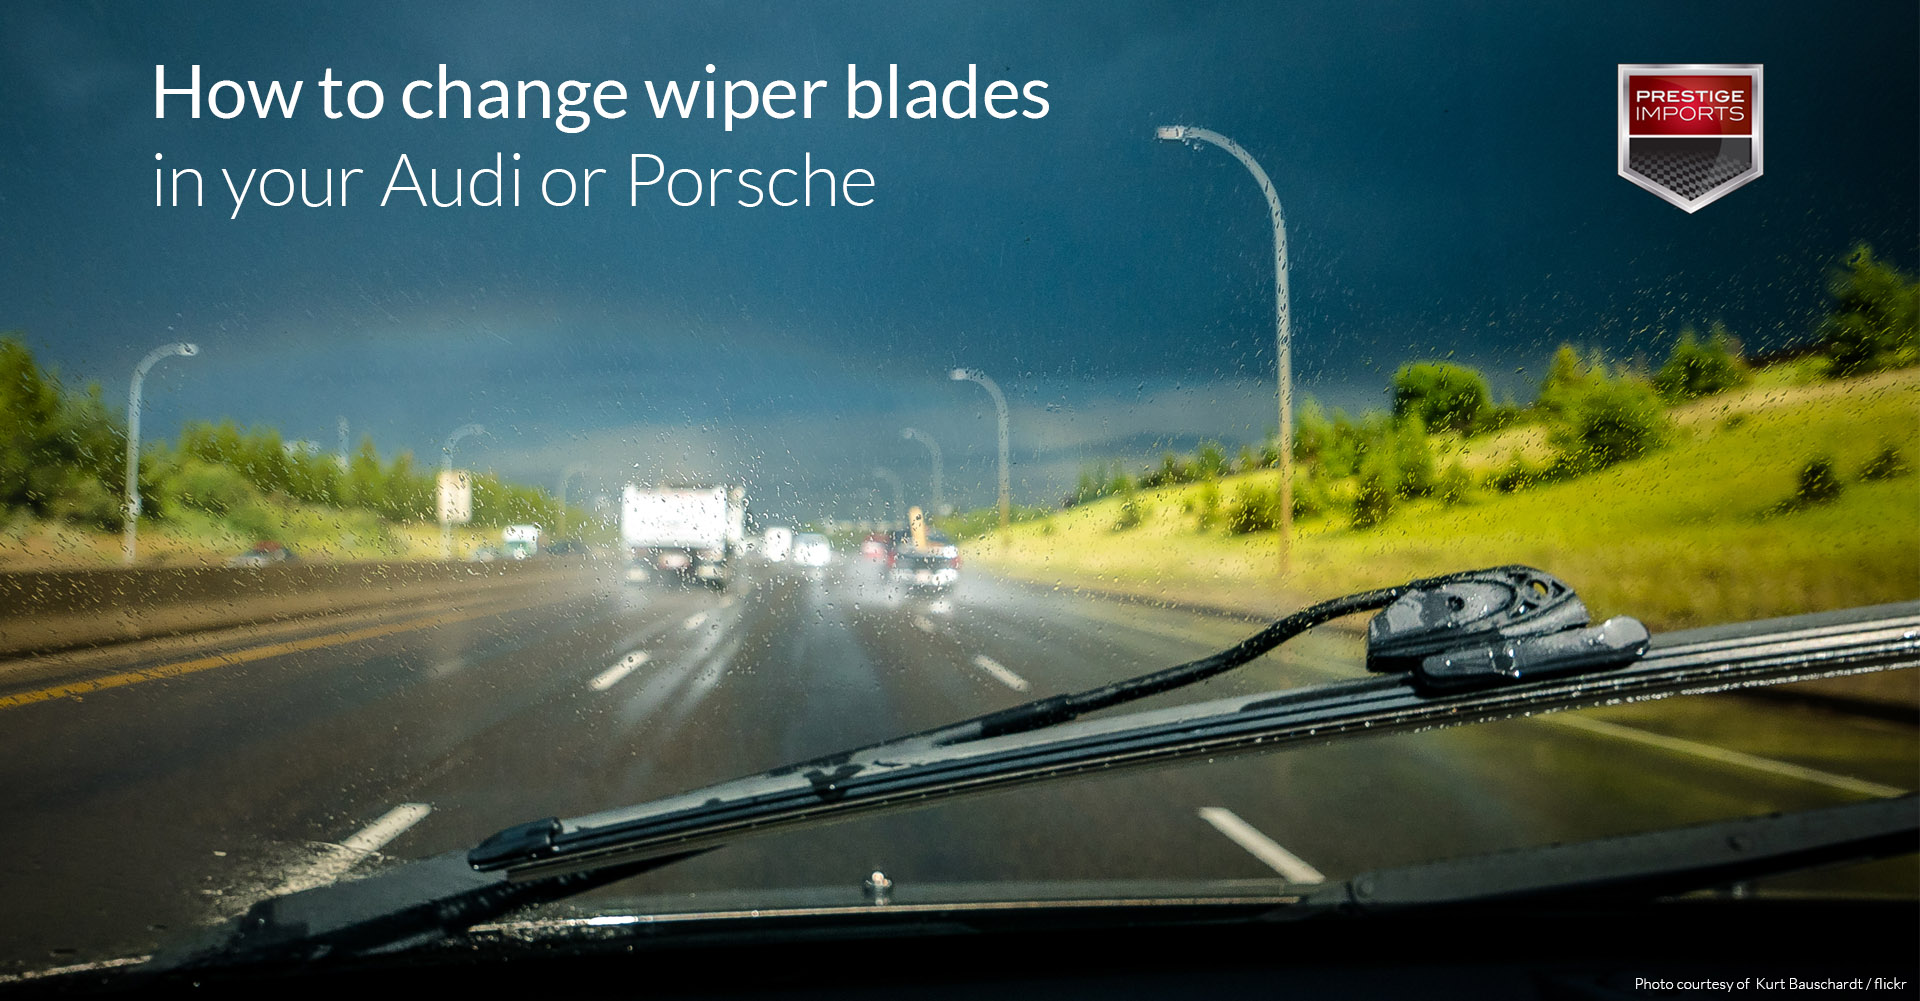 How to change wiper blades in your Audi or Porsche